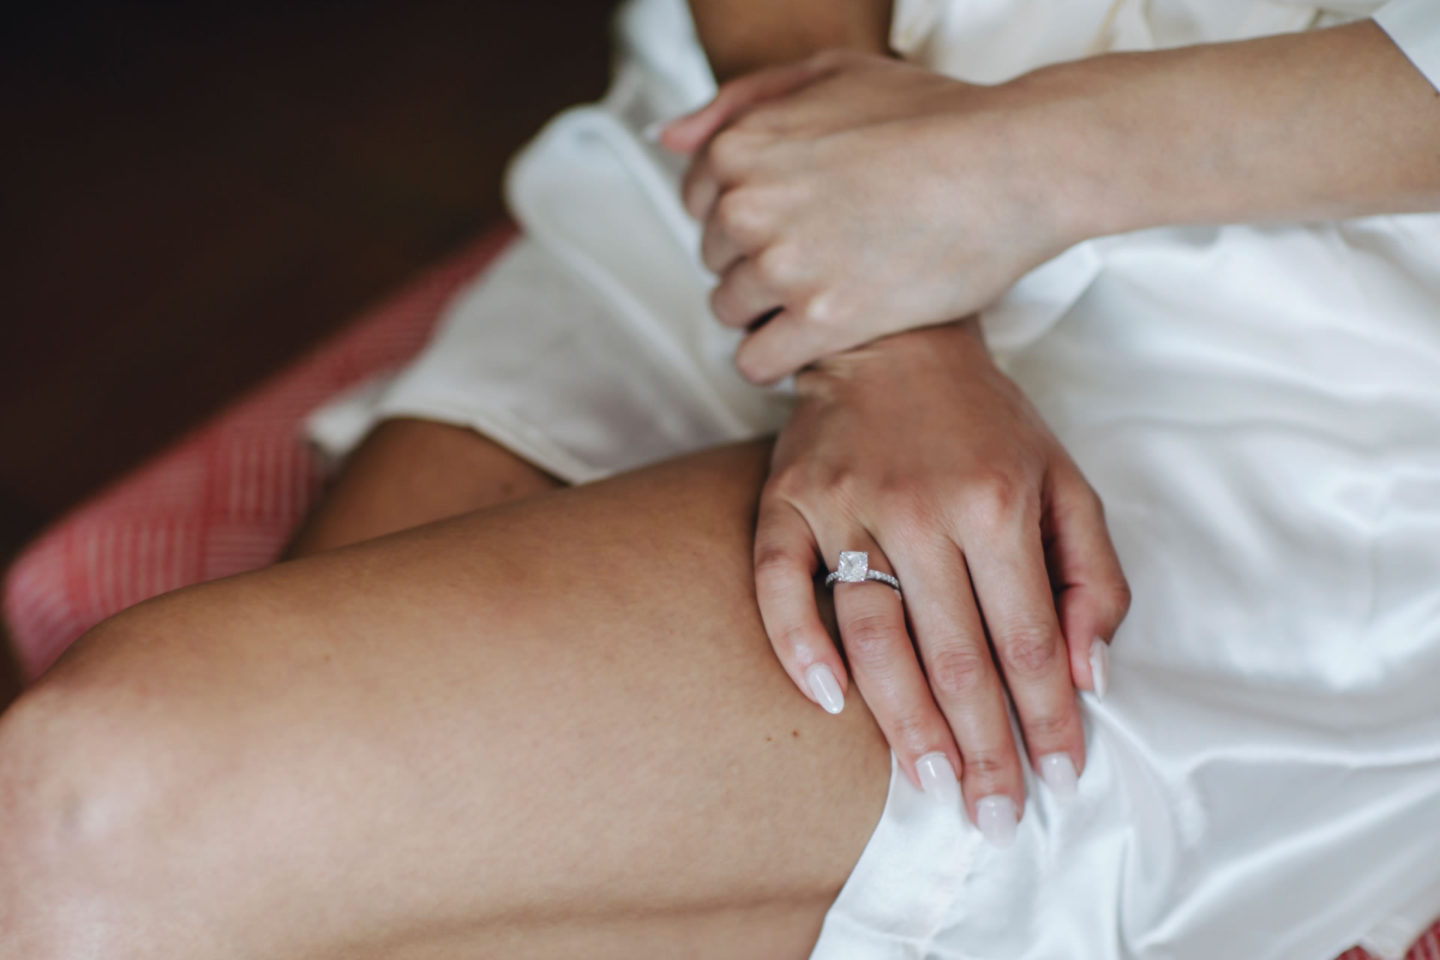 Hands :: Crazy wedding at Vincigliata Castle and Villa San Michele :: Luxury wedding photography - 3 :: Hands